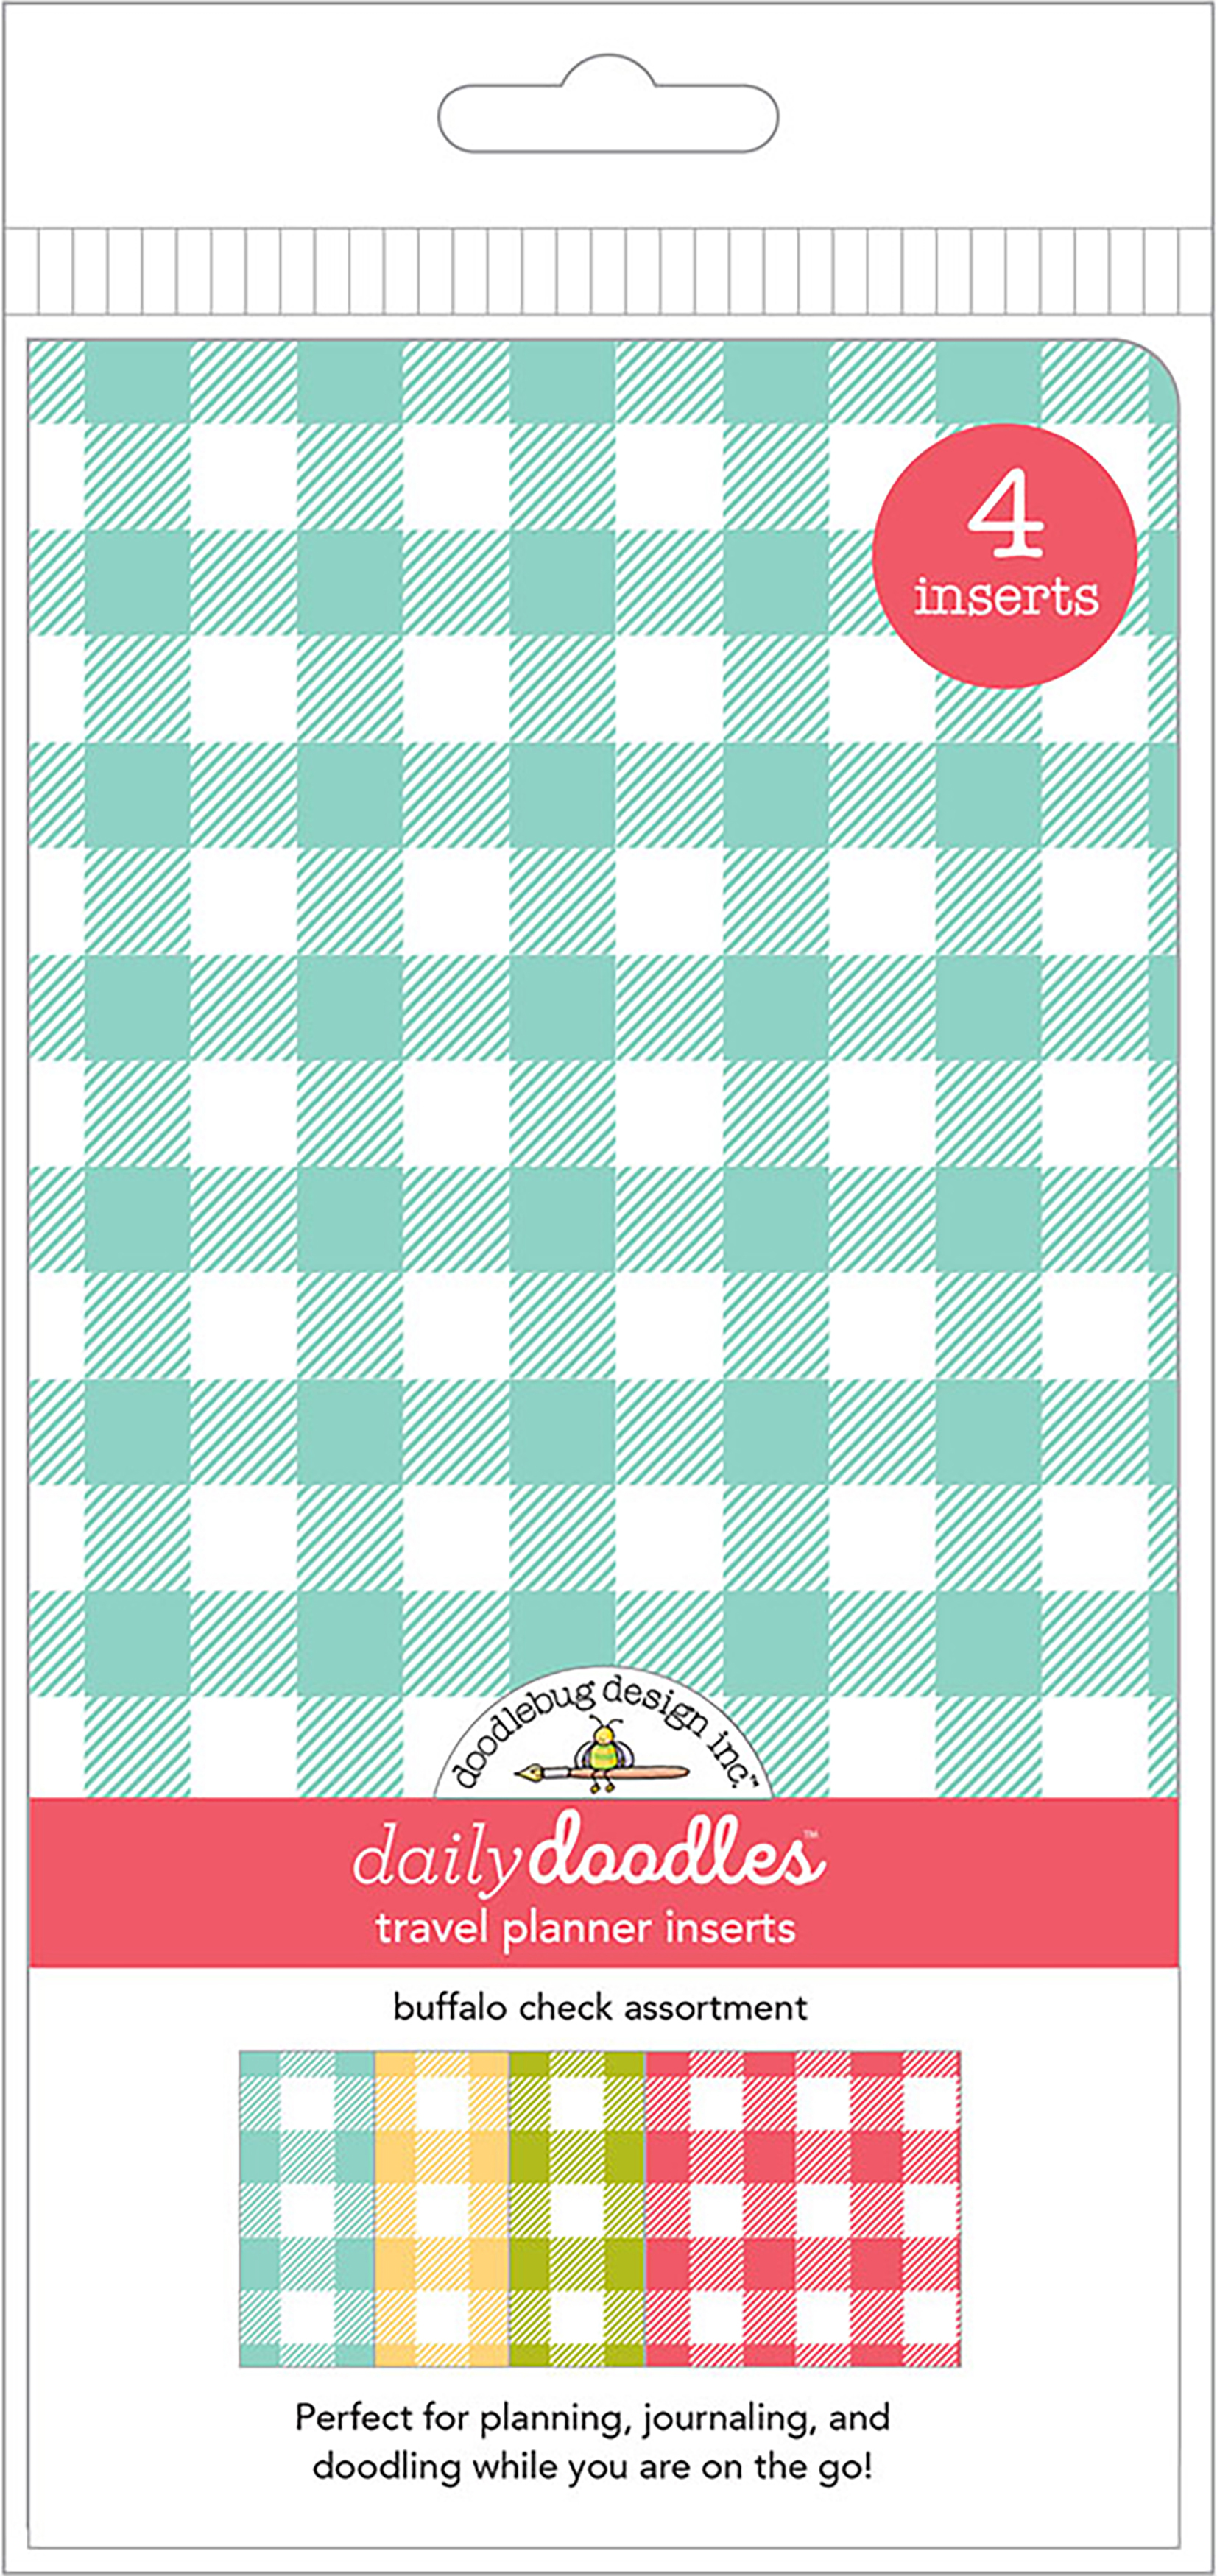 Doodlebug Daily Doodles - Buffalo Check Travel Planner Inserts, 4/Pack